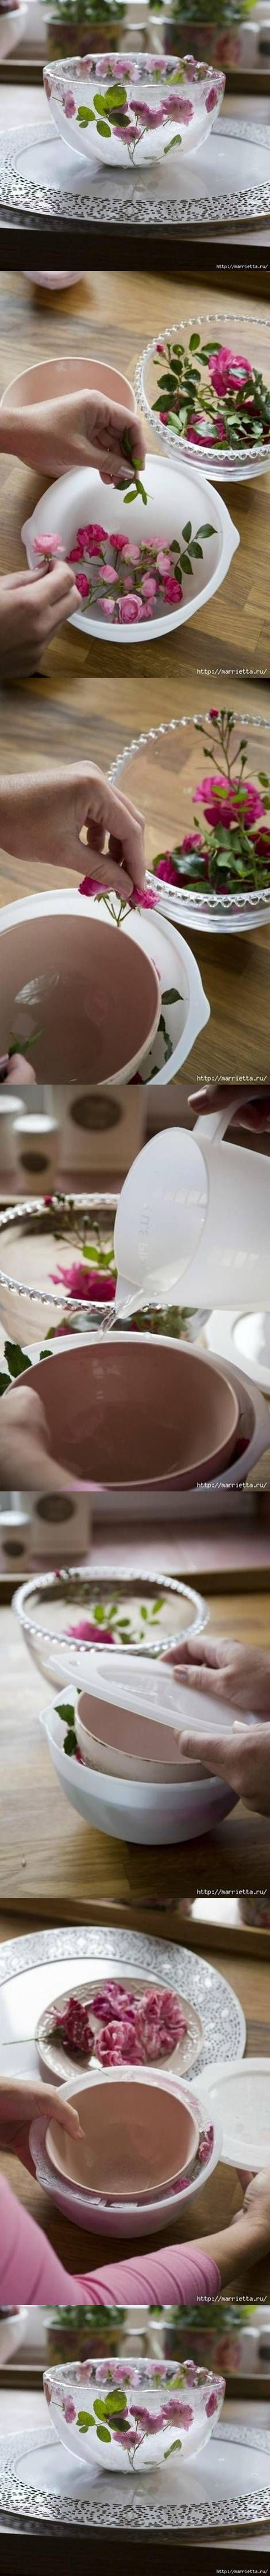 DIY Icy Flower Bowl DIY Projects